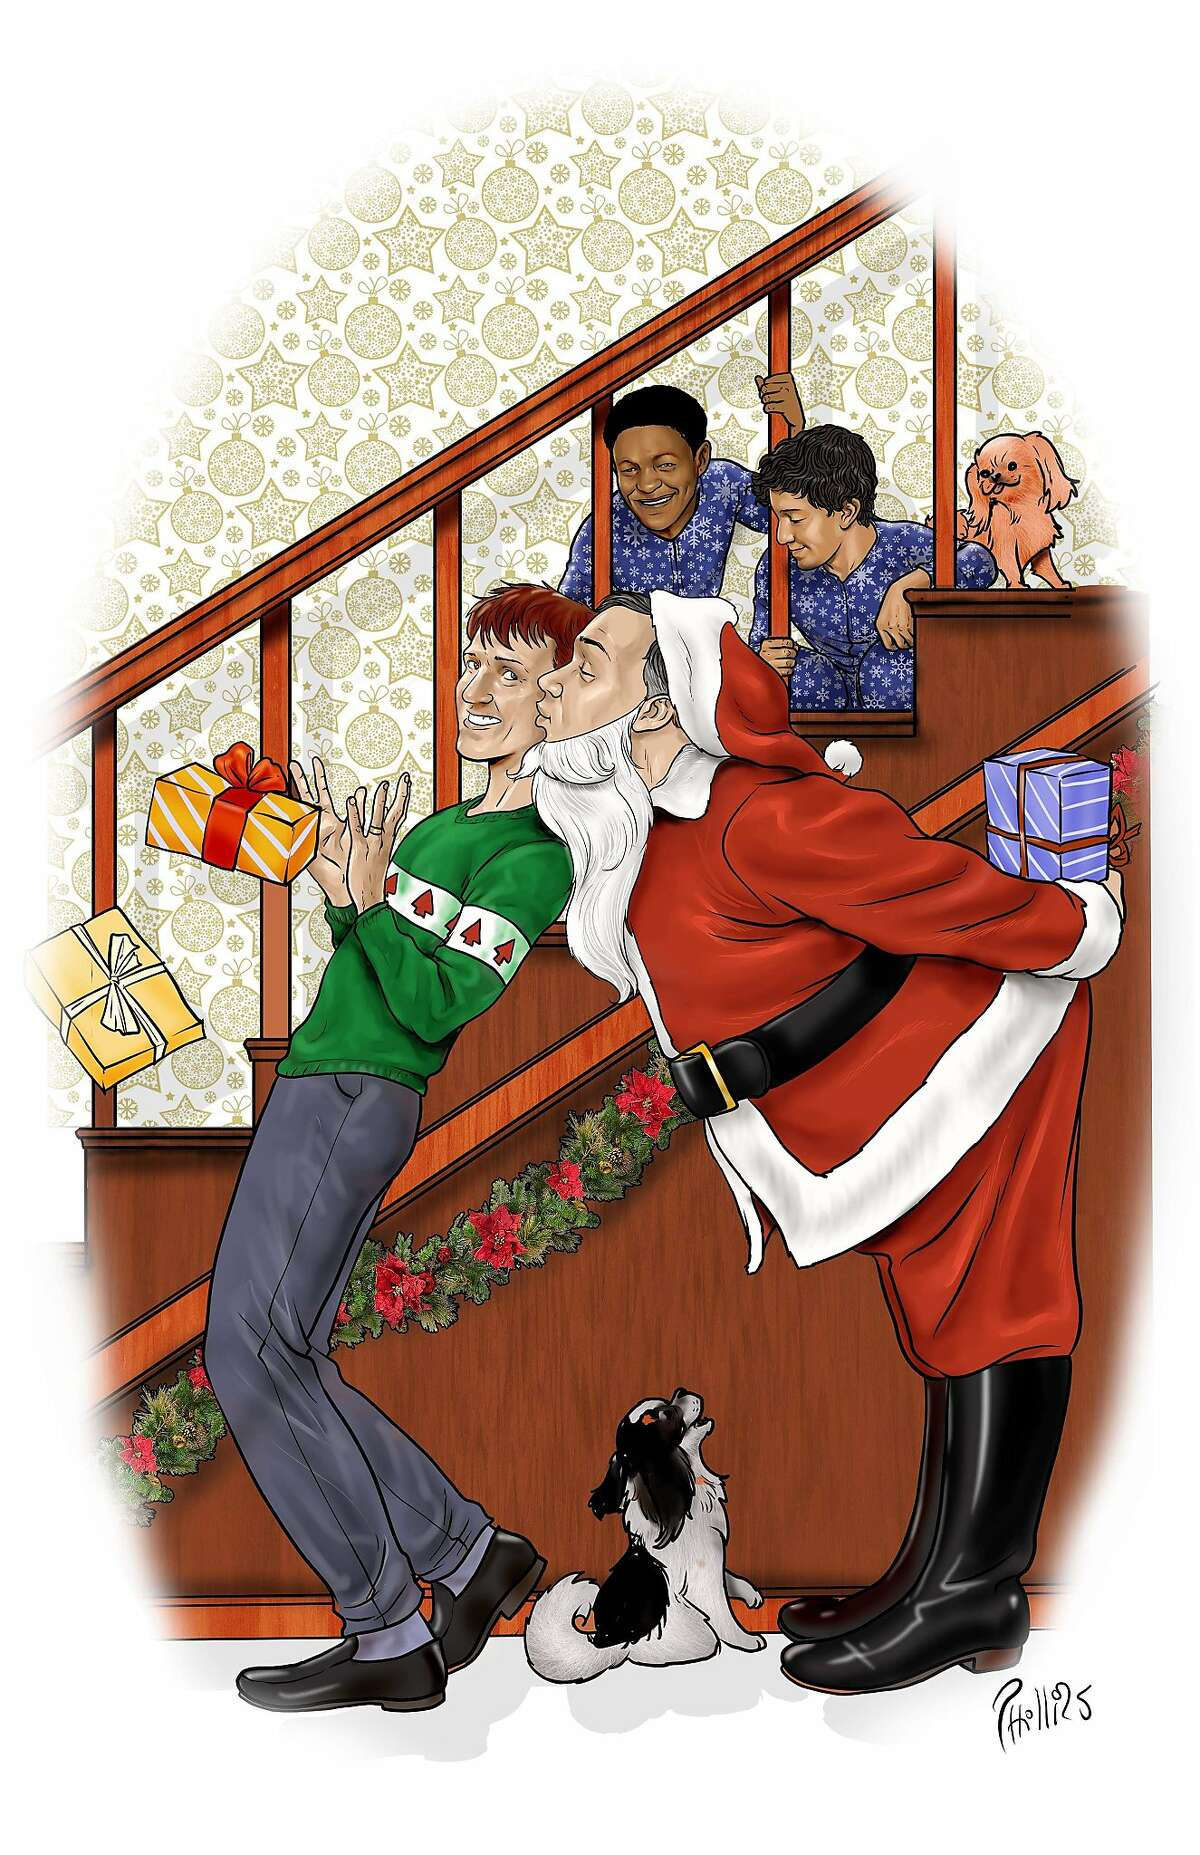 A Joe Phillips vision of the Fisher-Paulson family at Christmas.